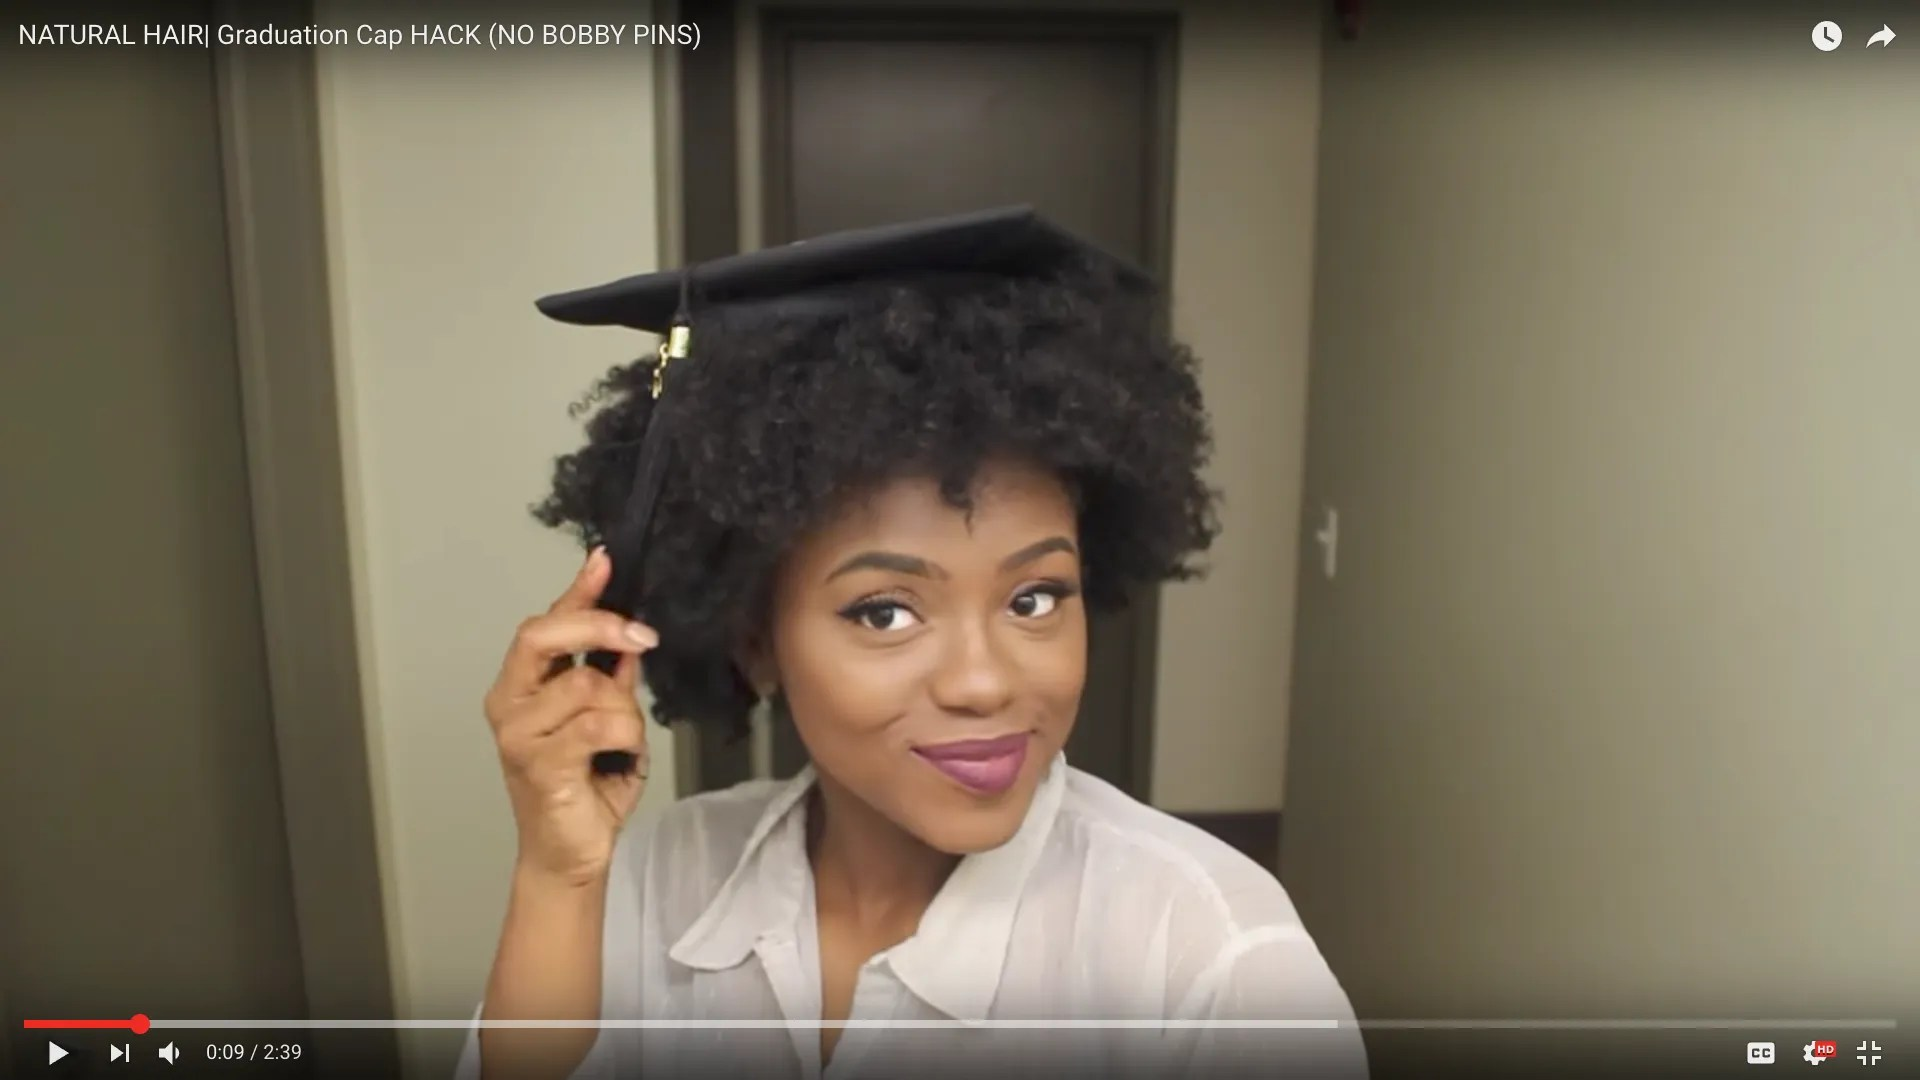 How To Wear A Graduation Cap For Natural Hair Types Teen Vogue